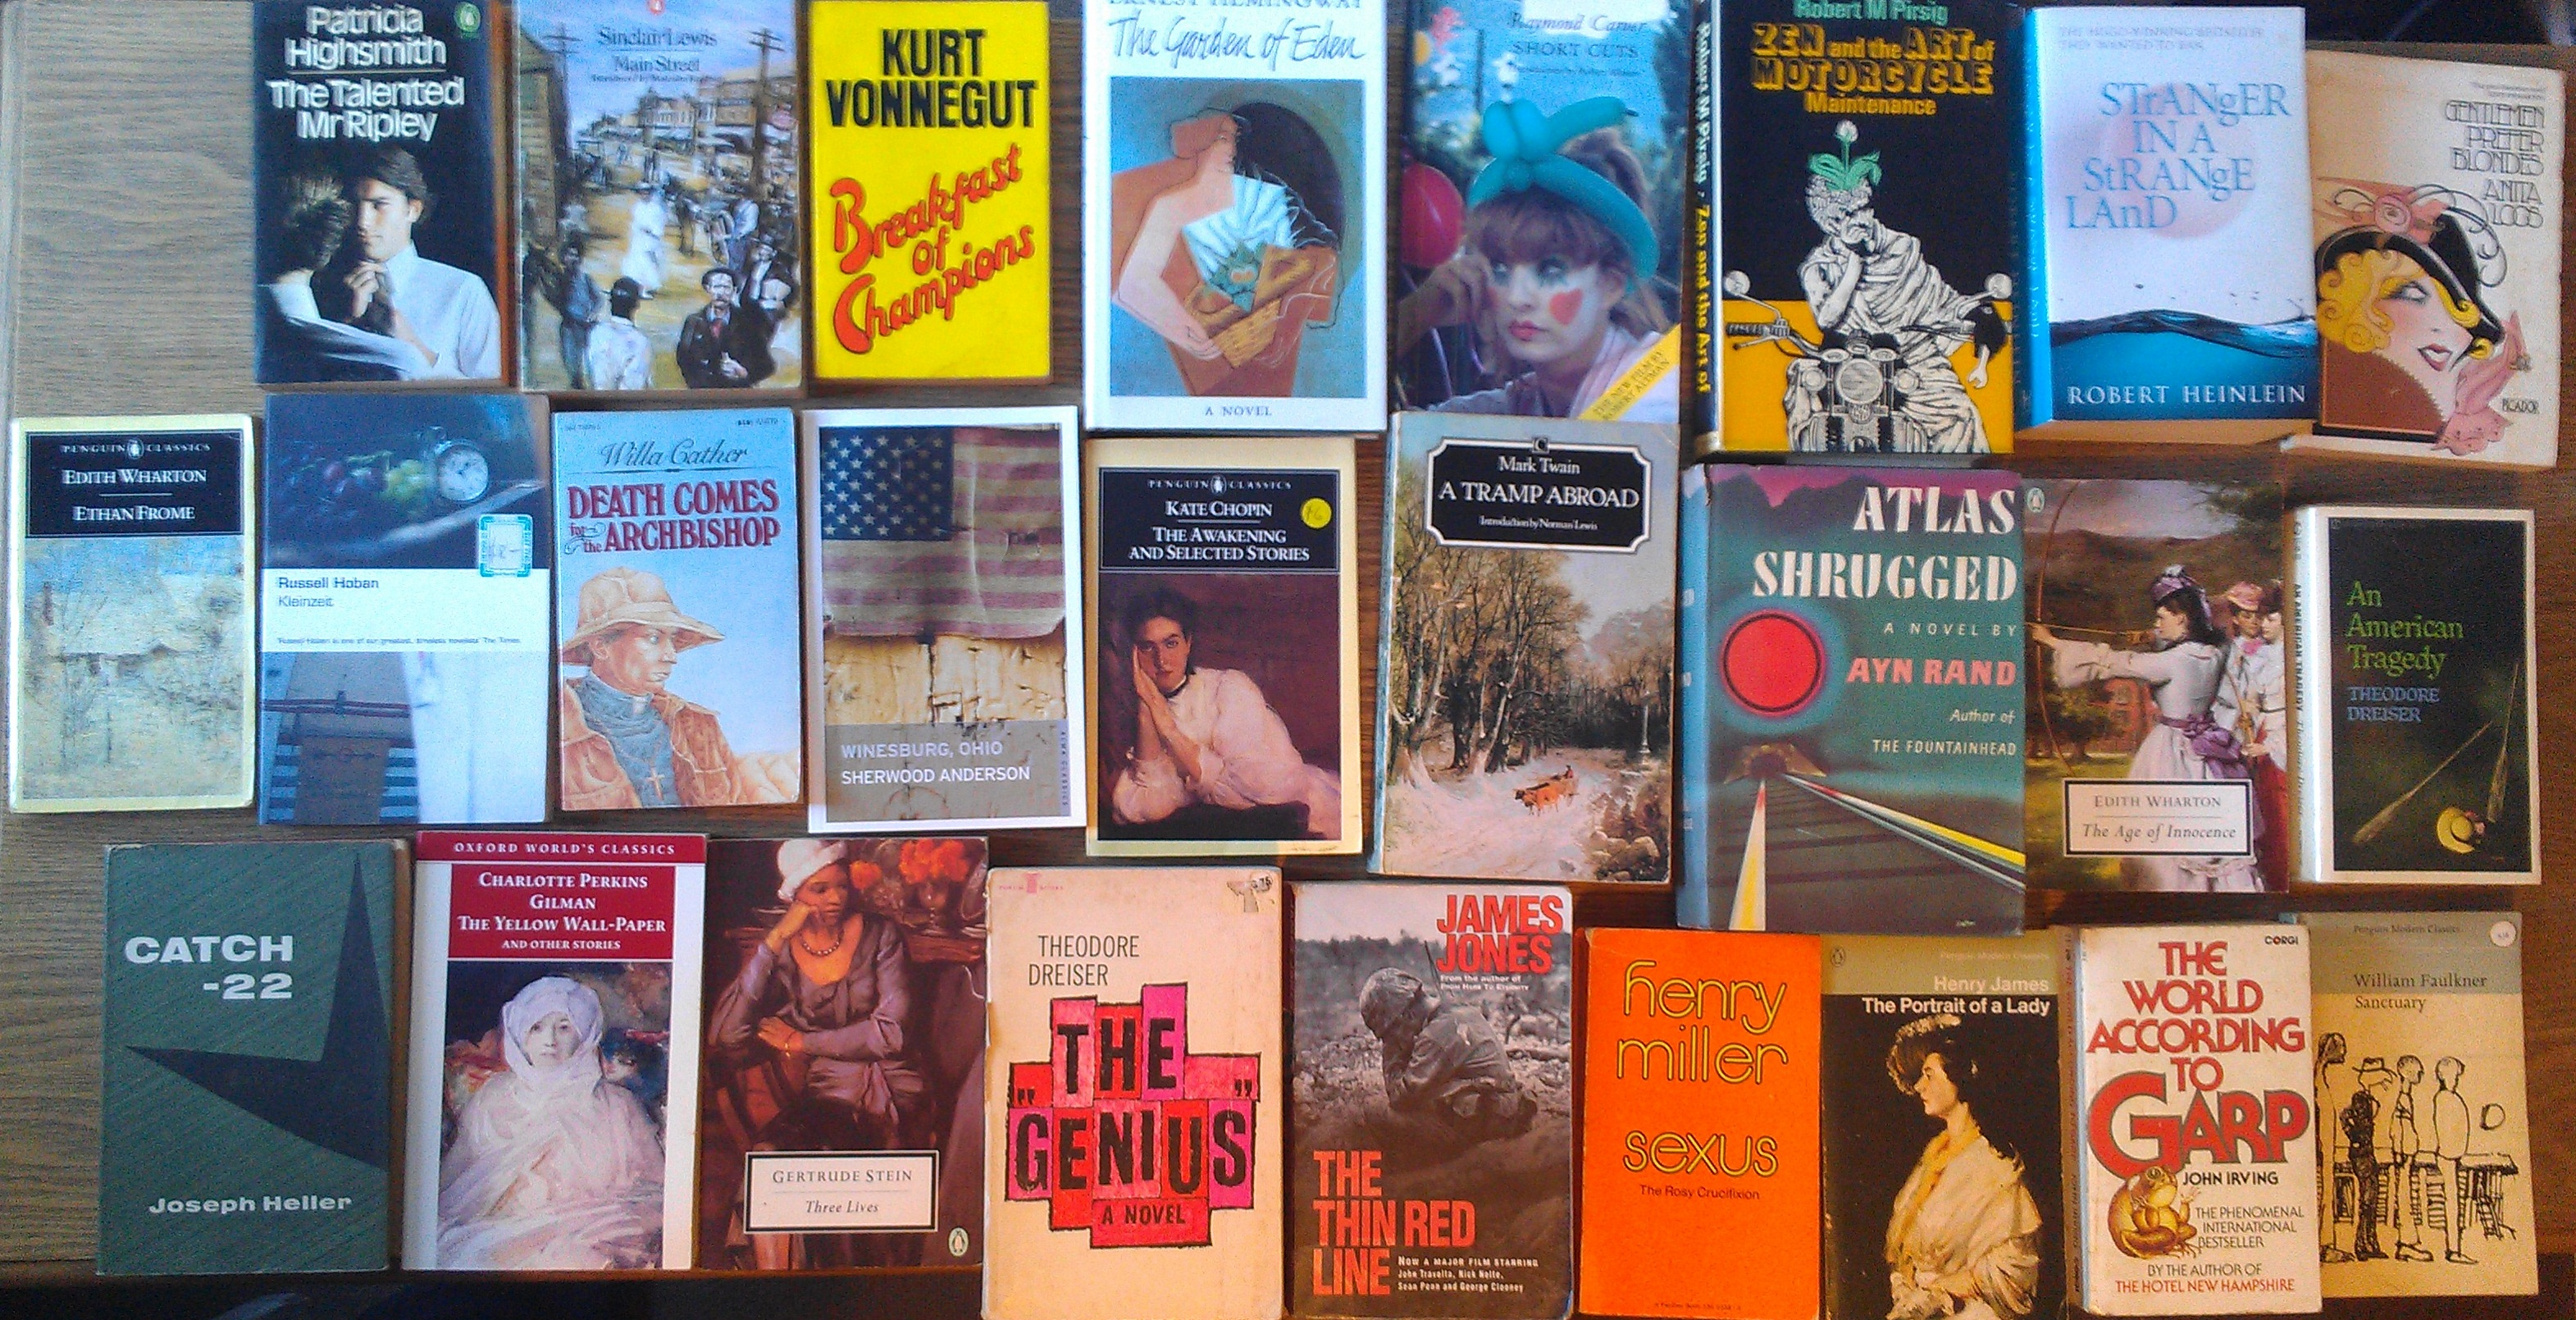 My favourite American novels